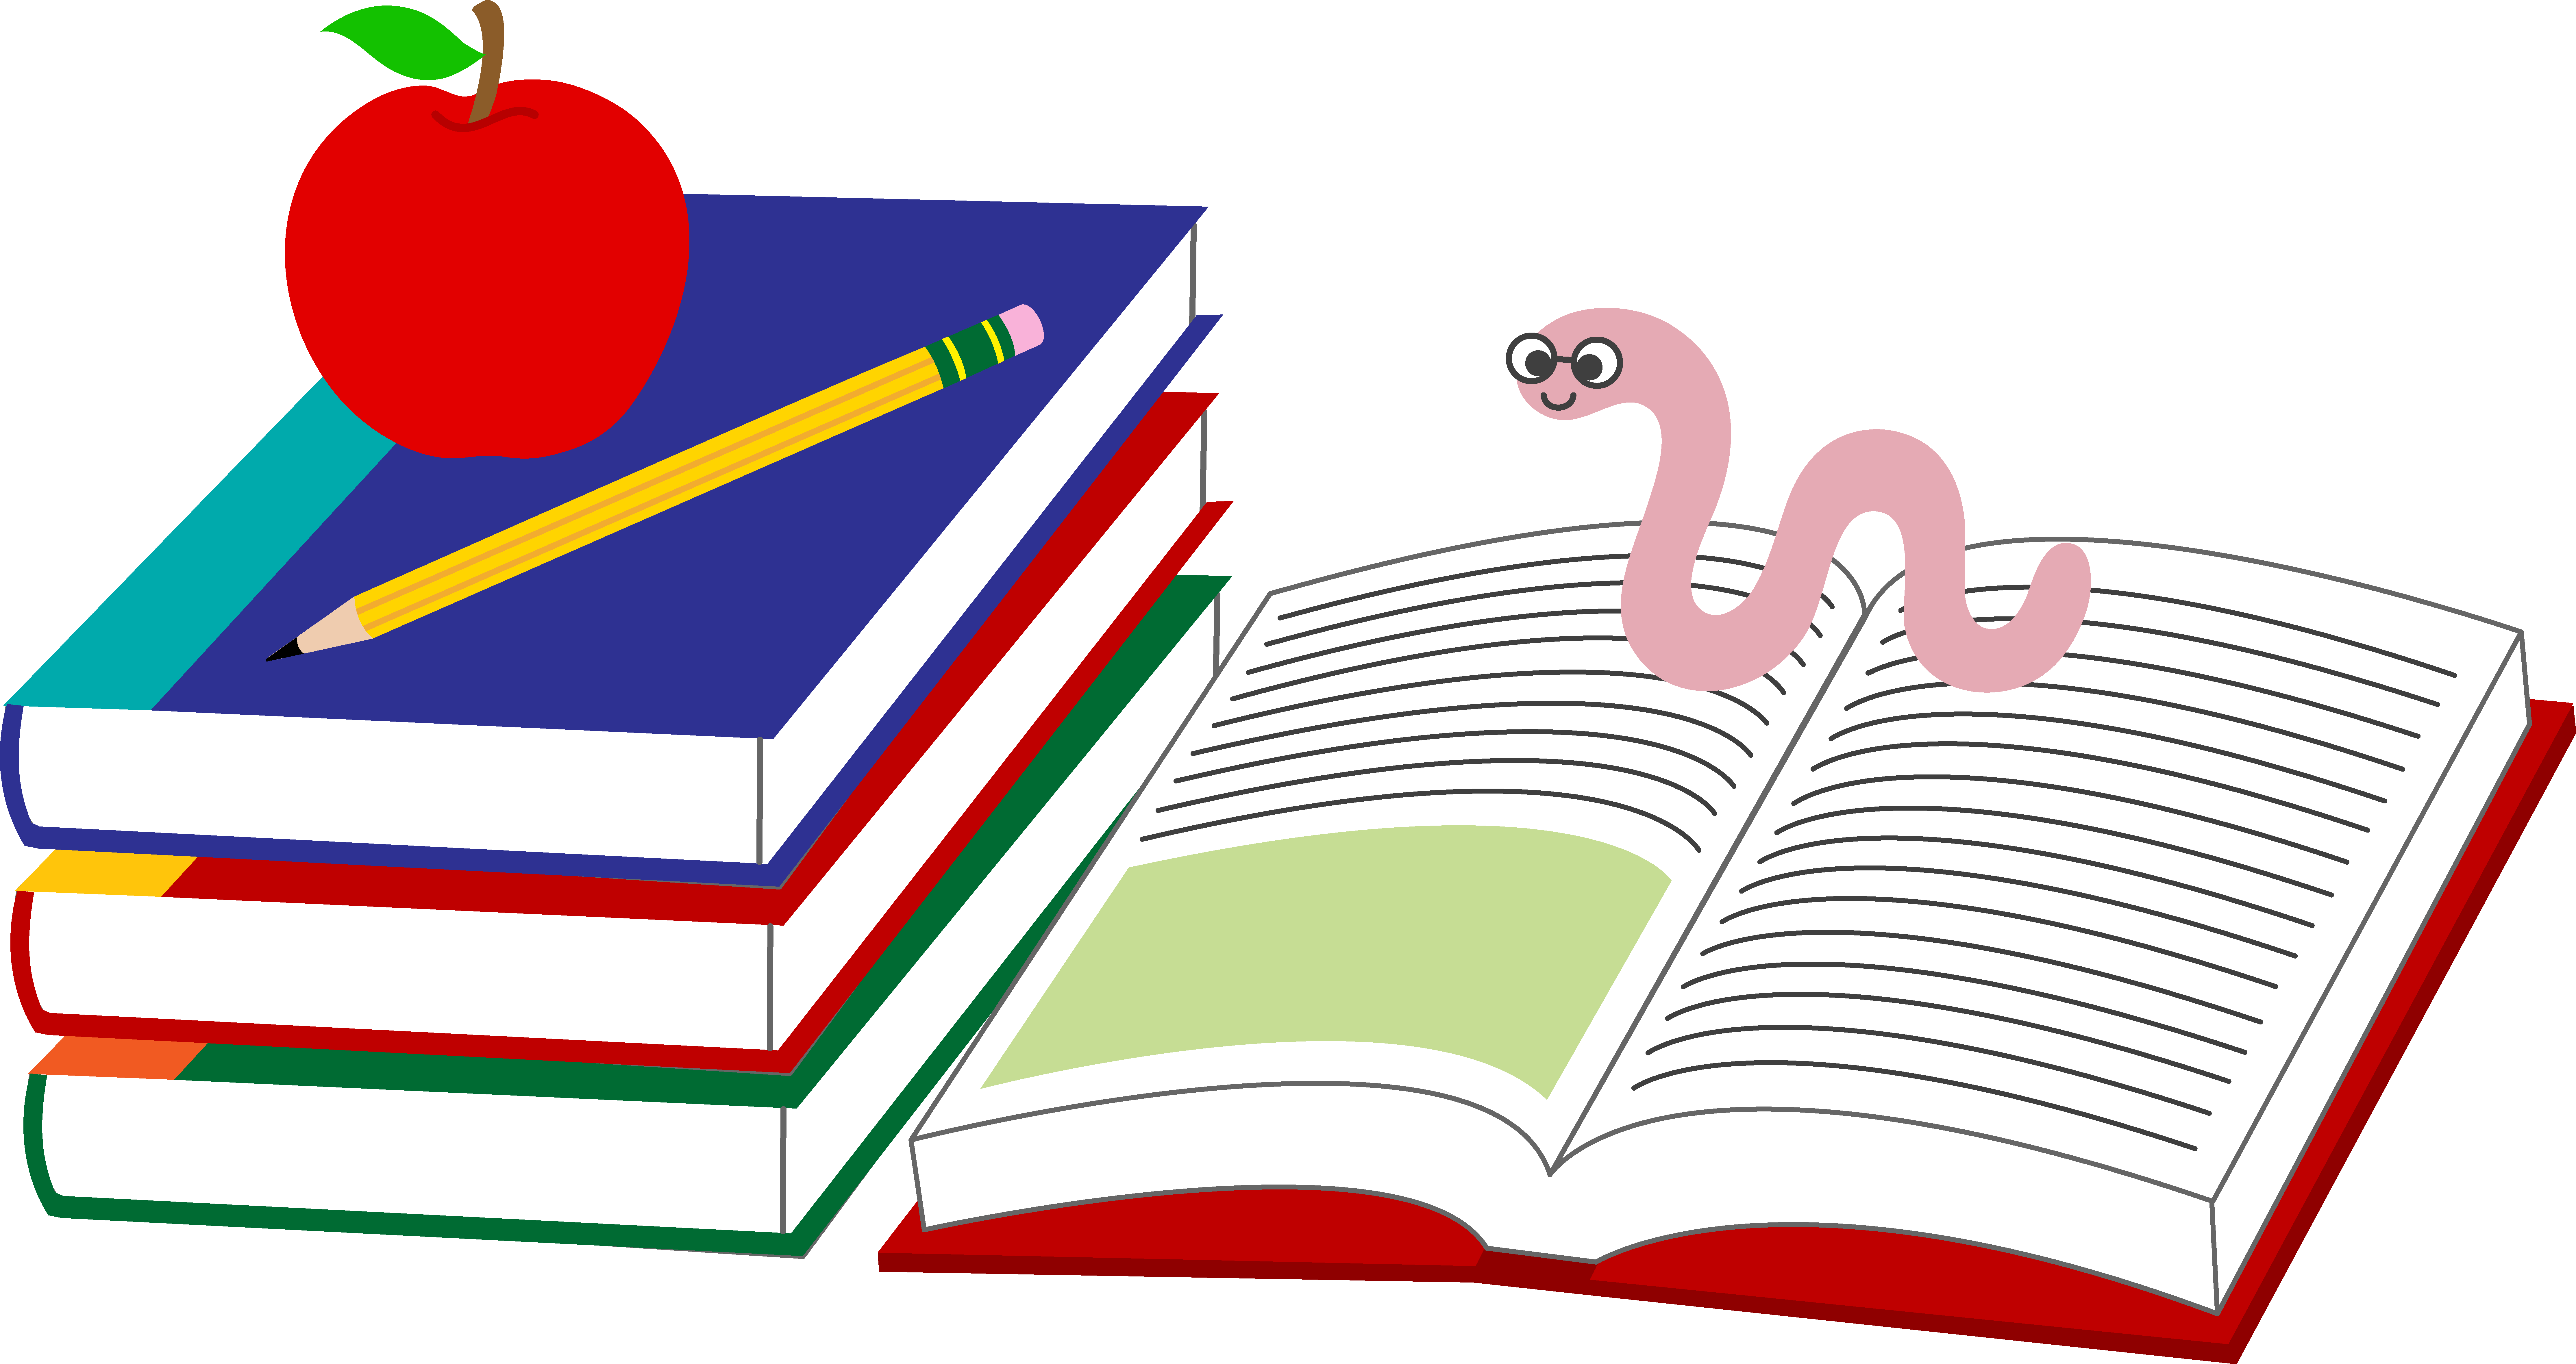 Pencil clipart book. School books and worm